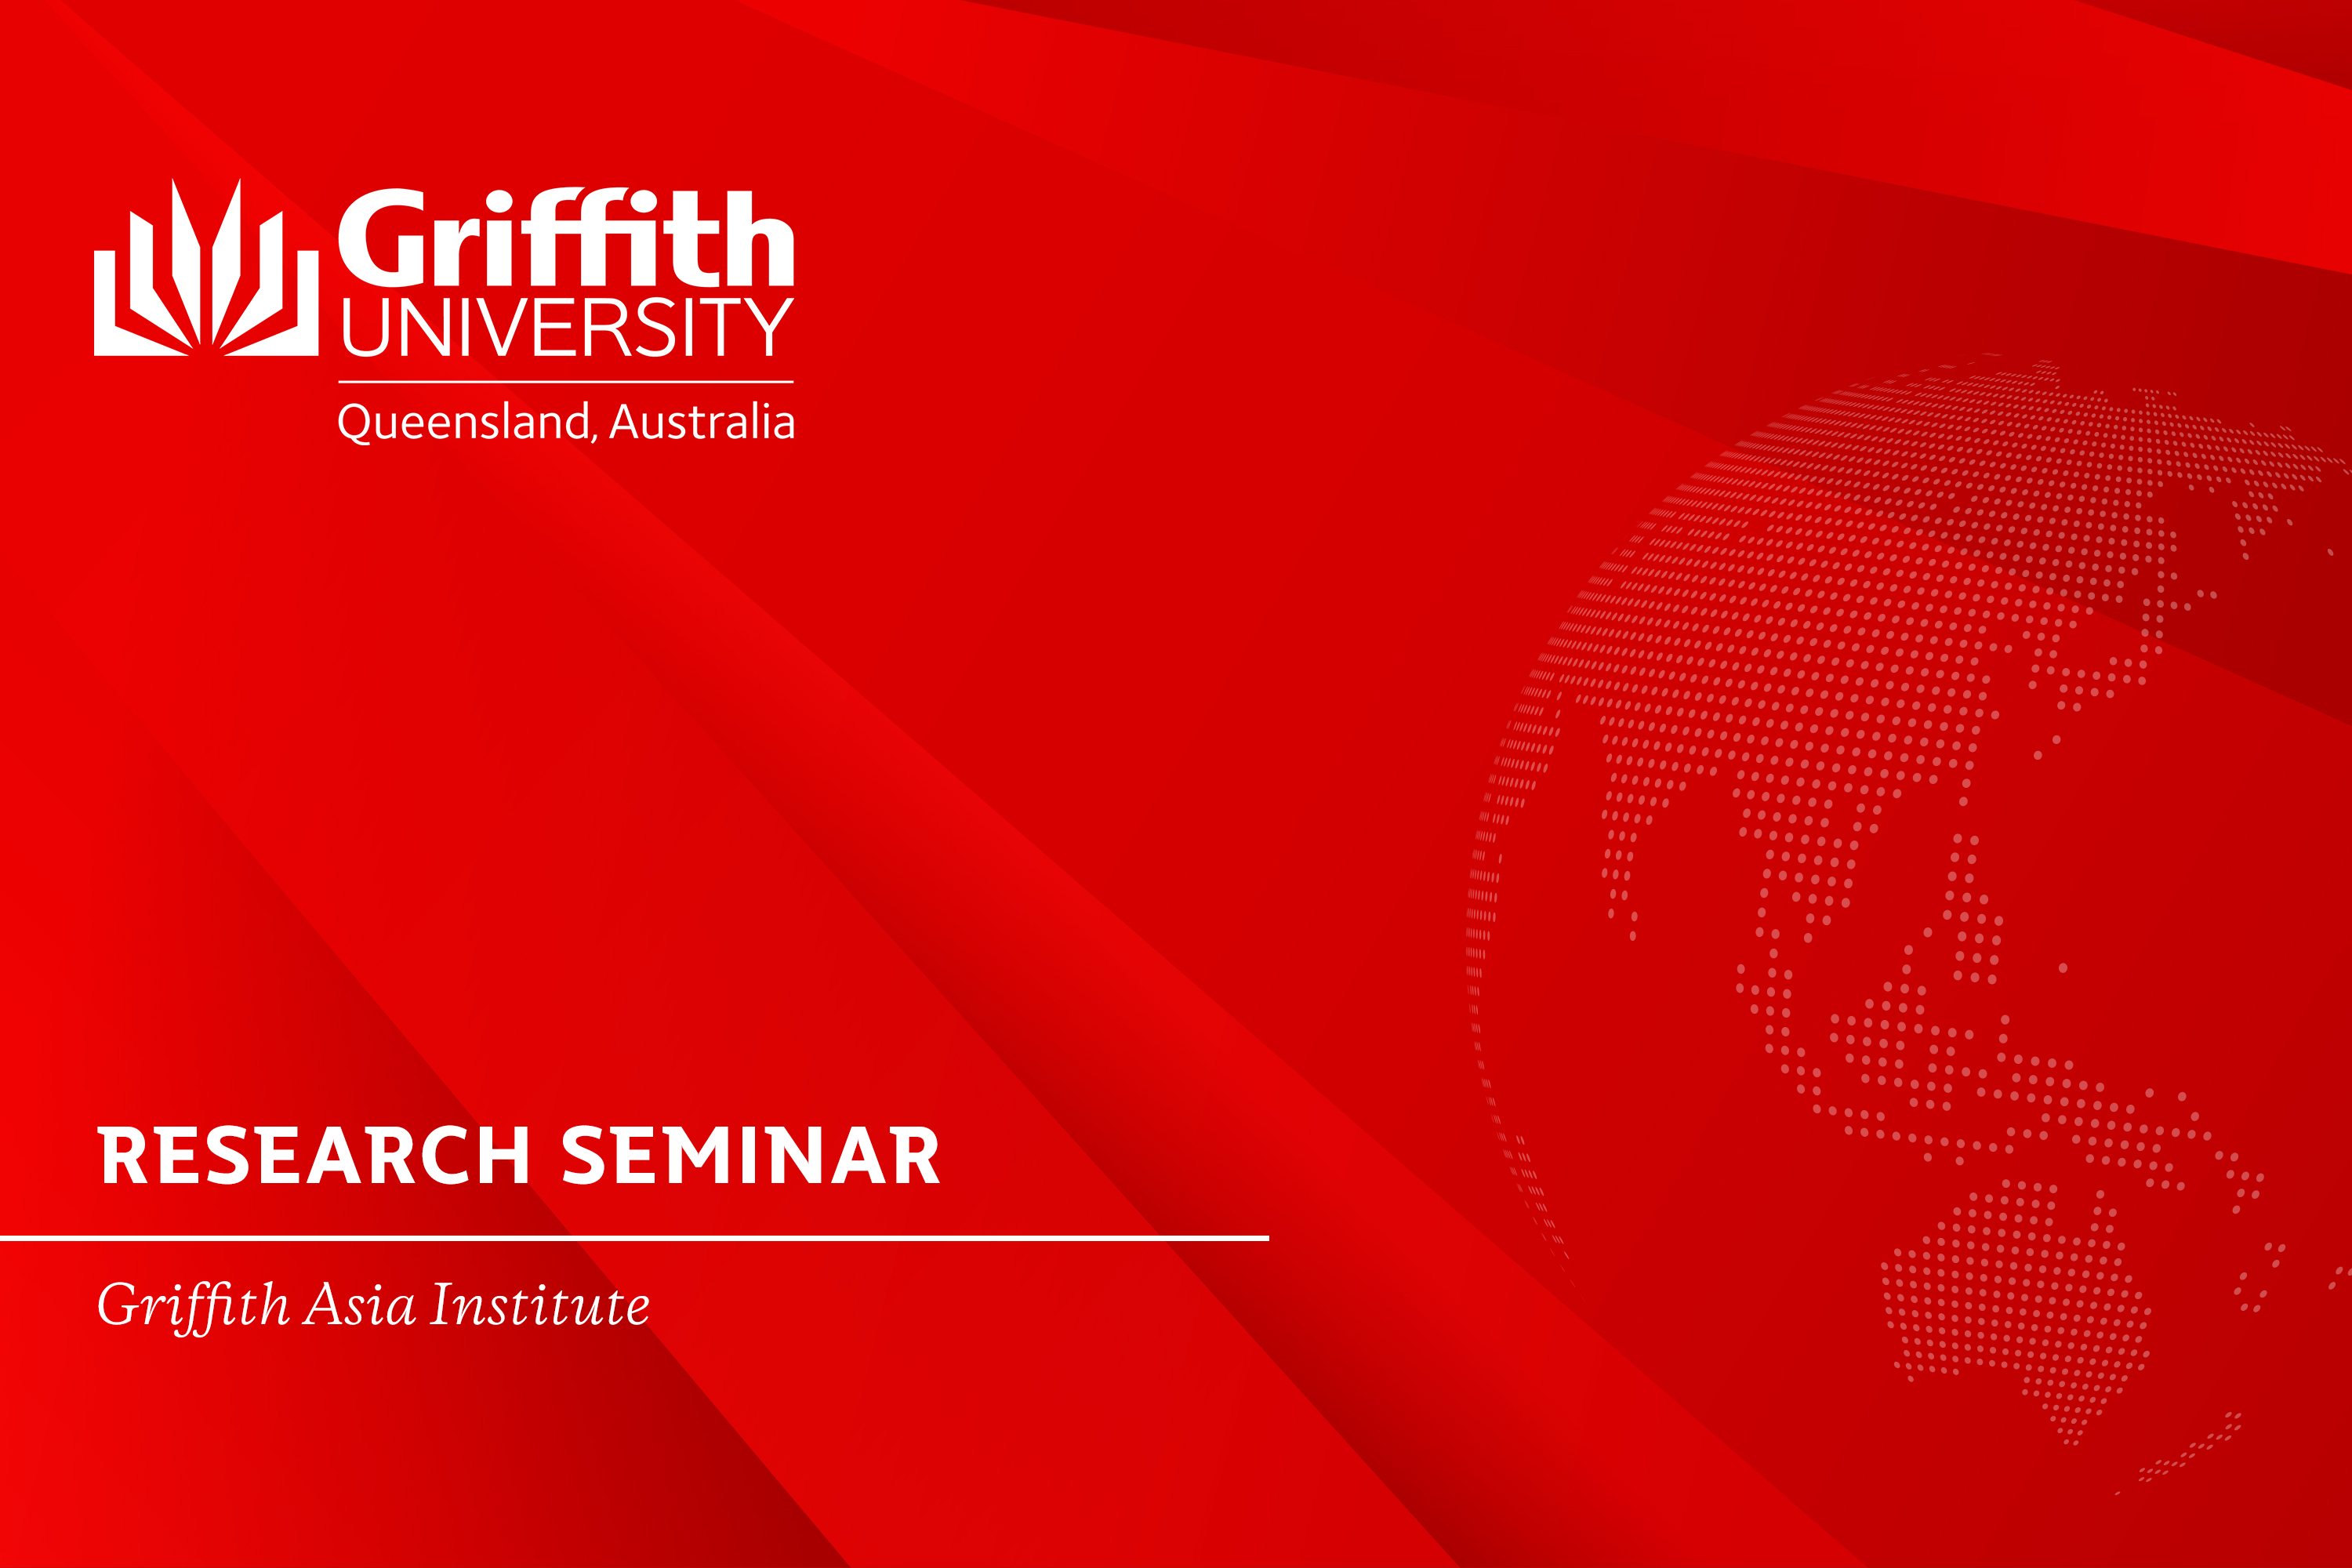 Griffith Asia Institute Research Seminar | A Critical Political Analysis of the UN's 2030 Sustainable Development Goals Agenda